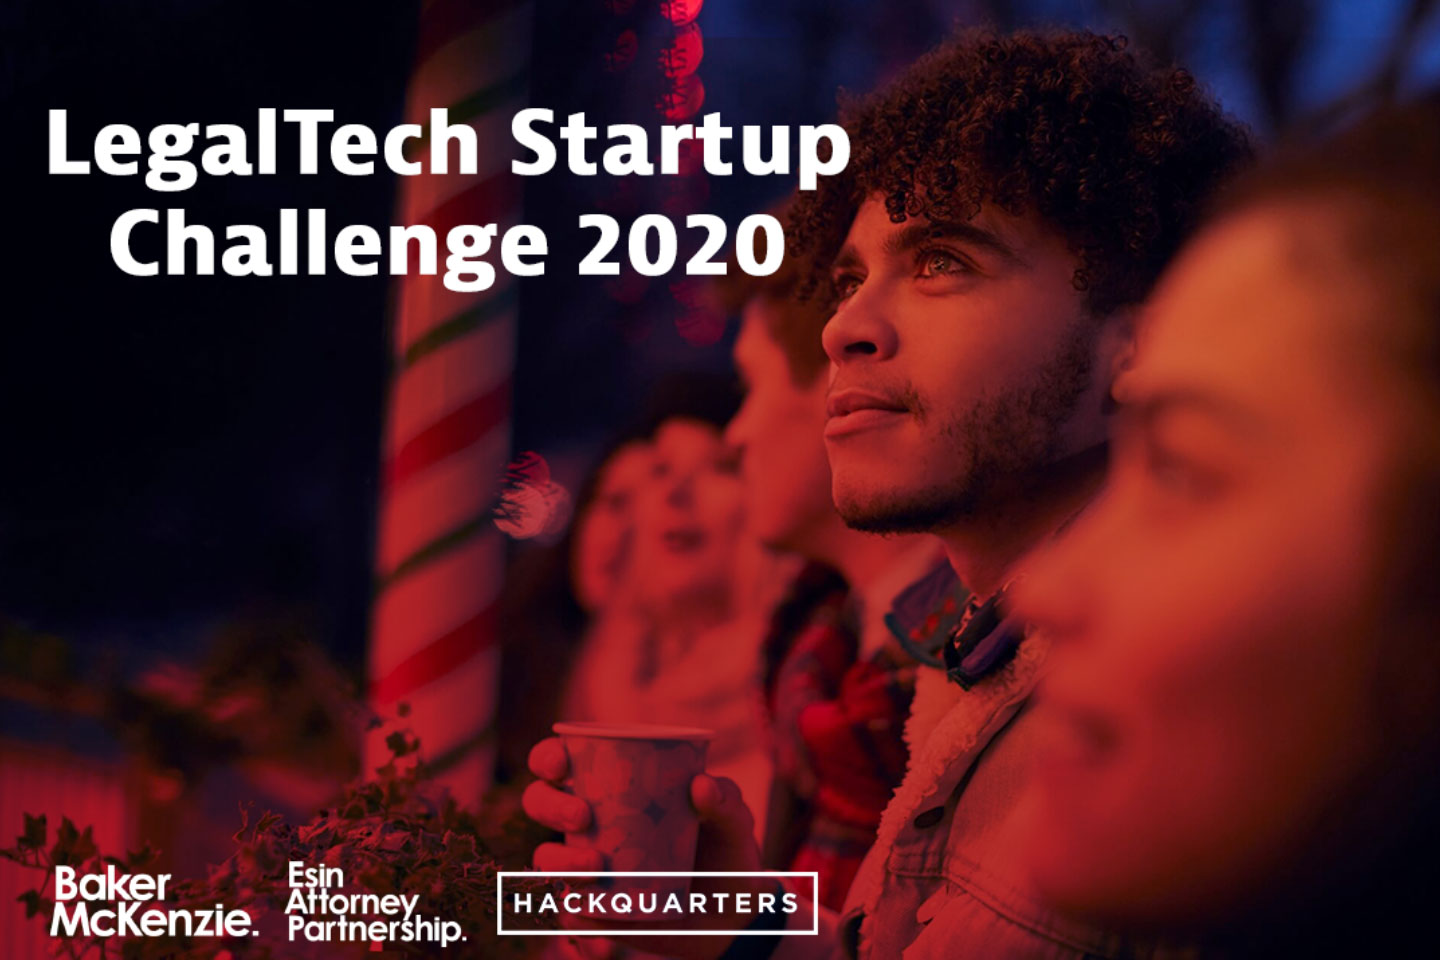 Collaborating with startups, the LegalTech Startup Challenge aims to make an impact in the legal practice by providing access to domain expertise and market credibility.